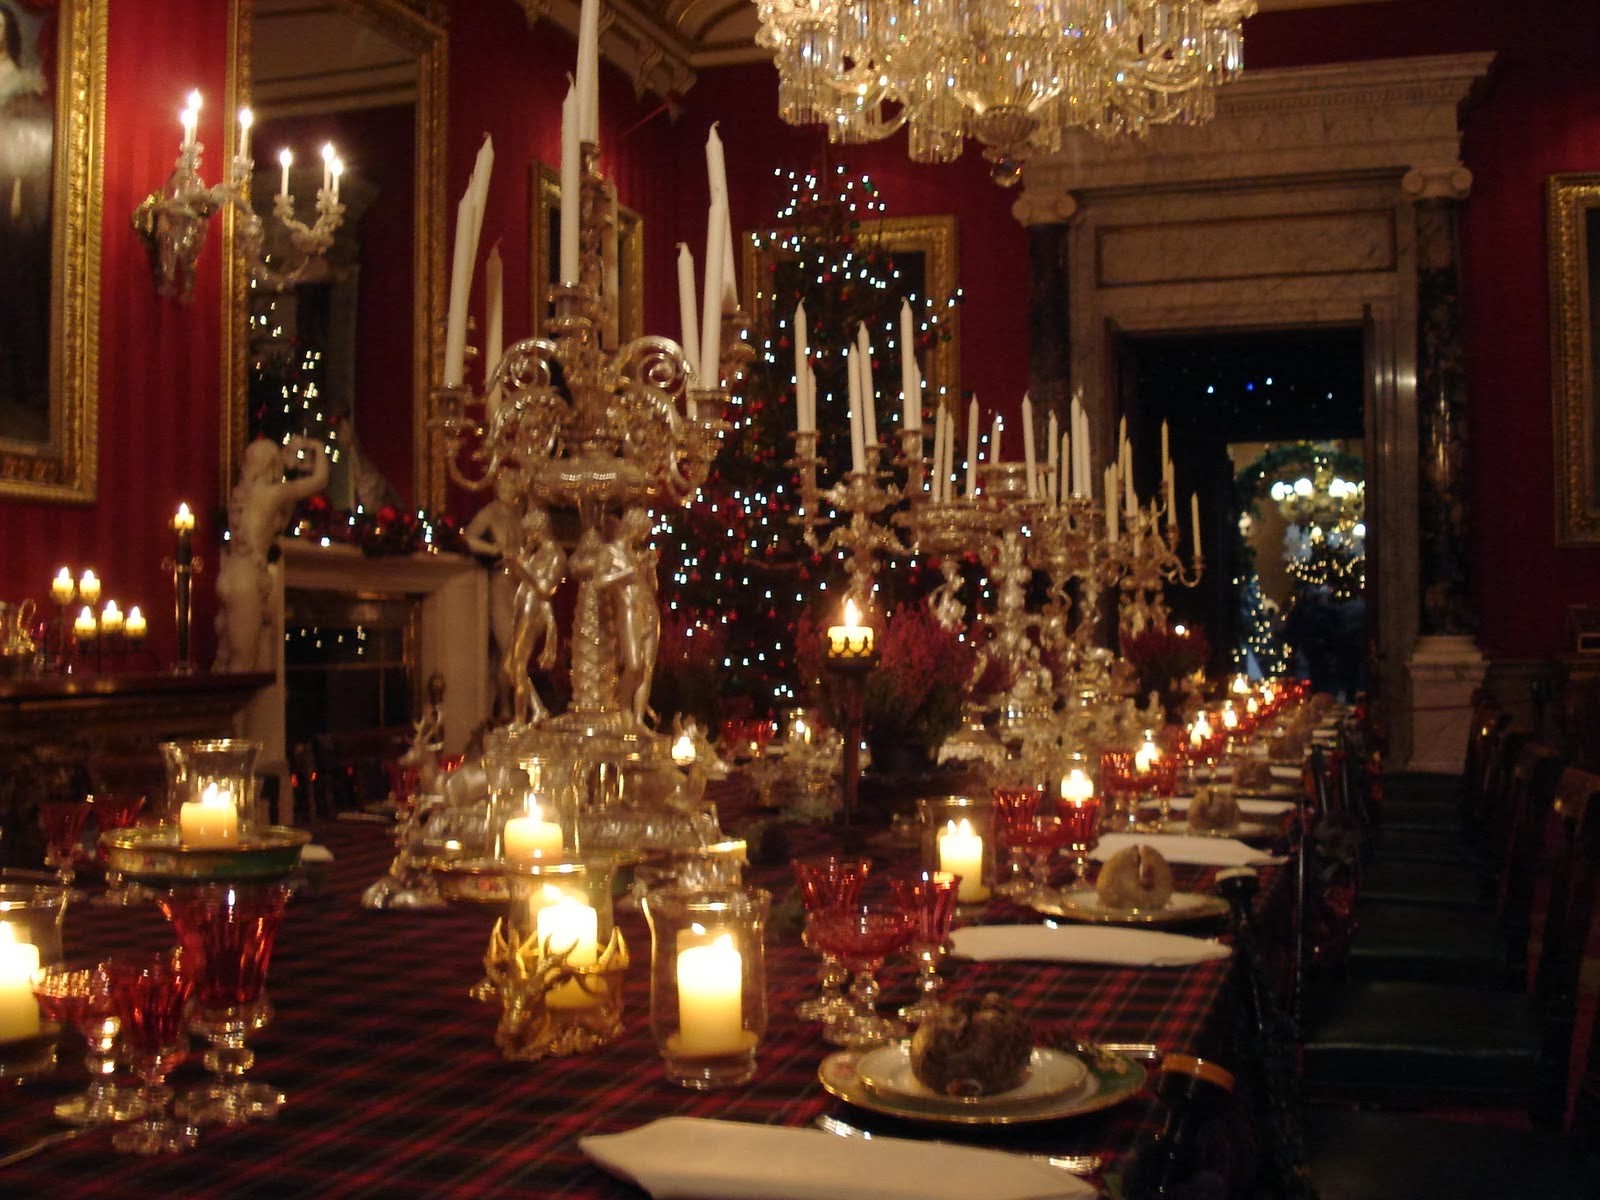 Chatsworth house dining table with holiday decor for The christmas decorations